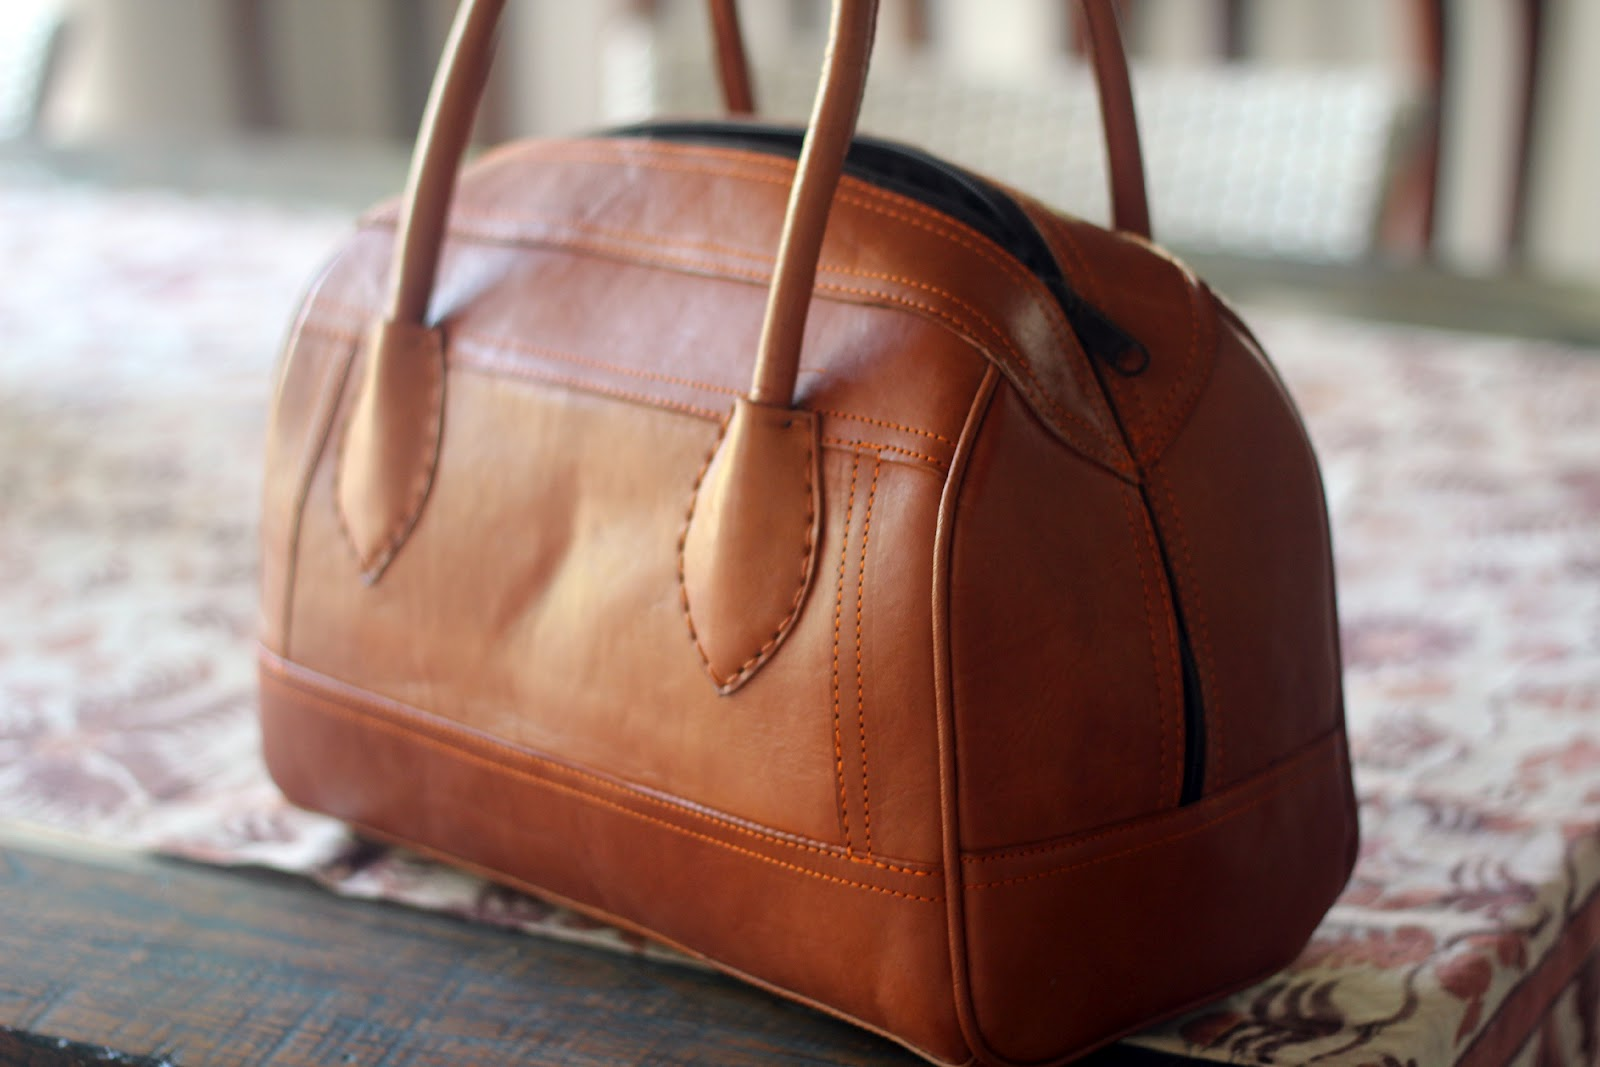 How to Care for Leather Handbags? - Indiamarks